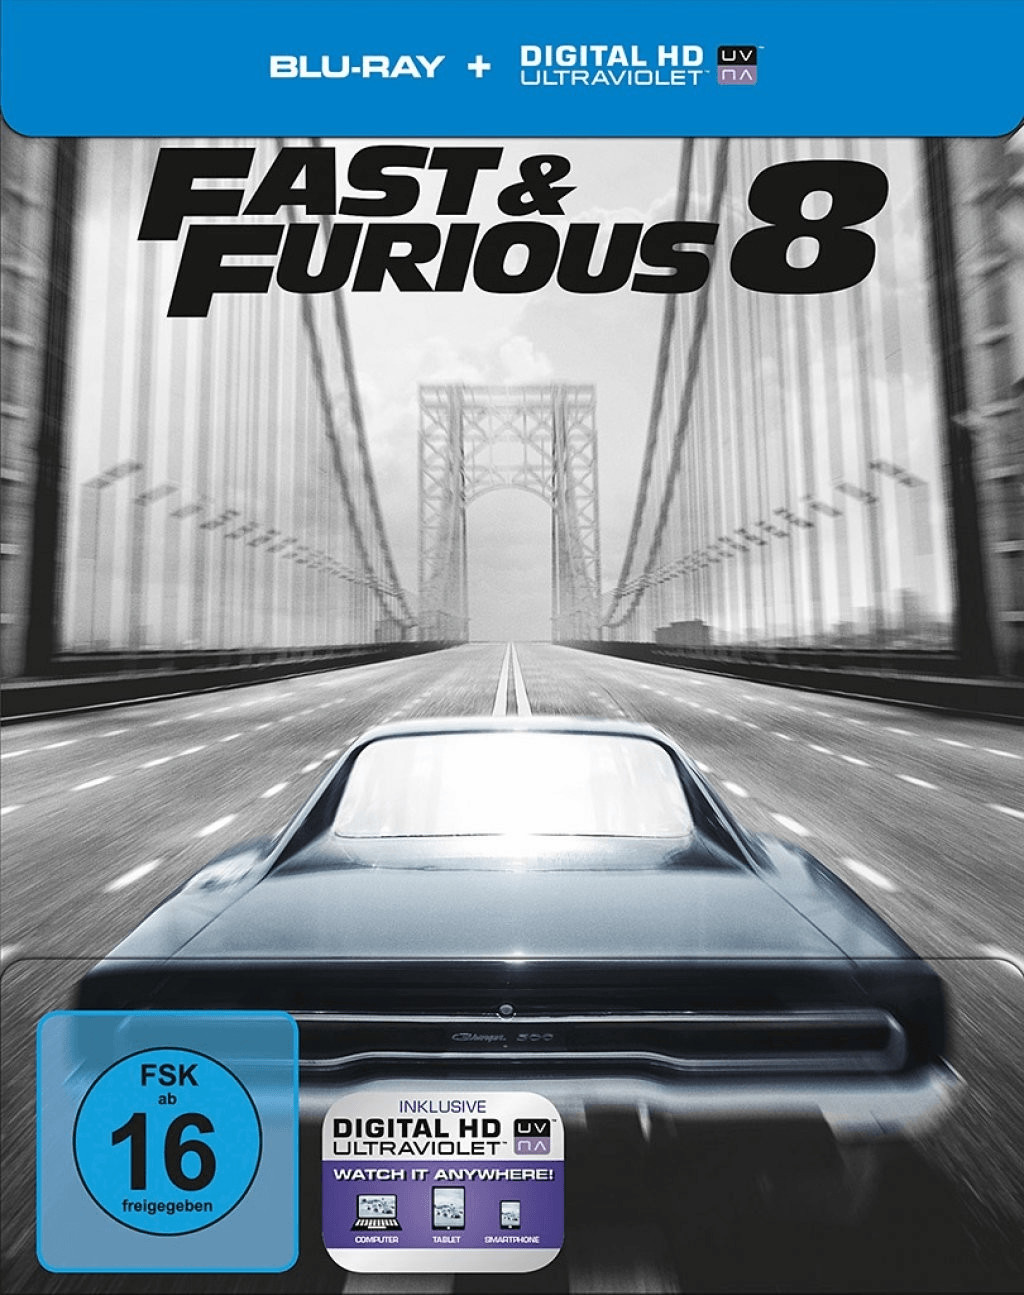 Fast & Furious 8 (Blu-ray + Digital HD Ultravio...